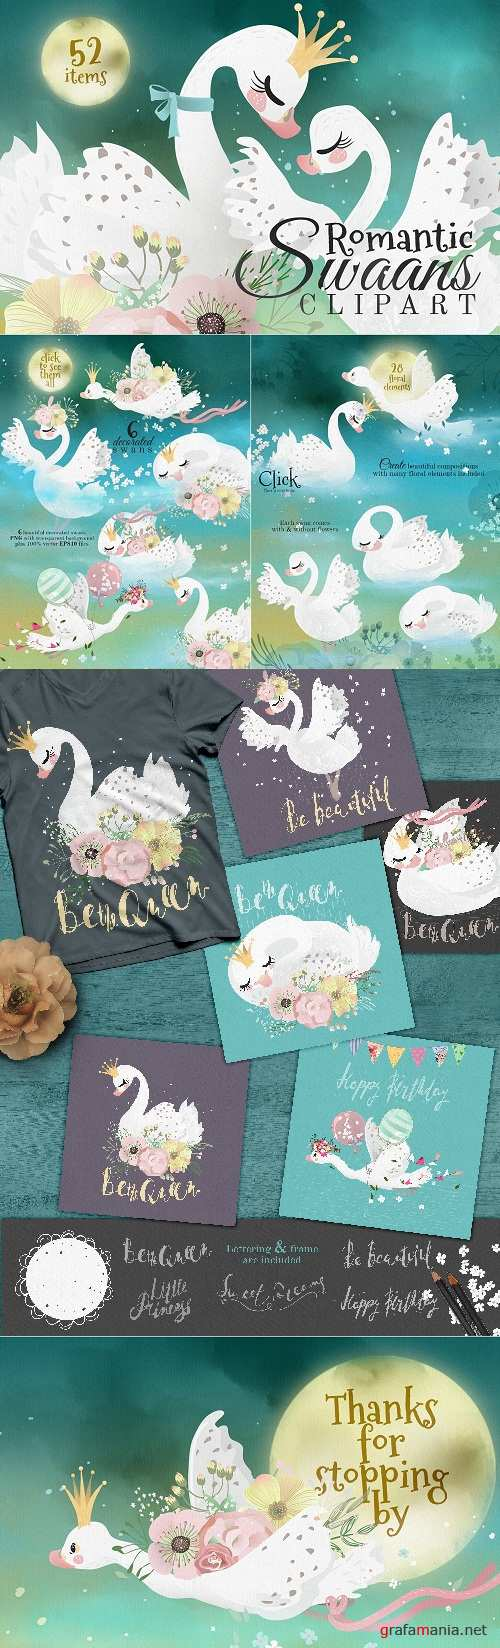 Romantic Swans Clipart - 2244992